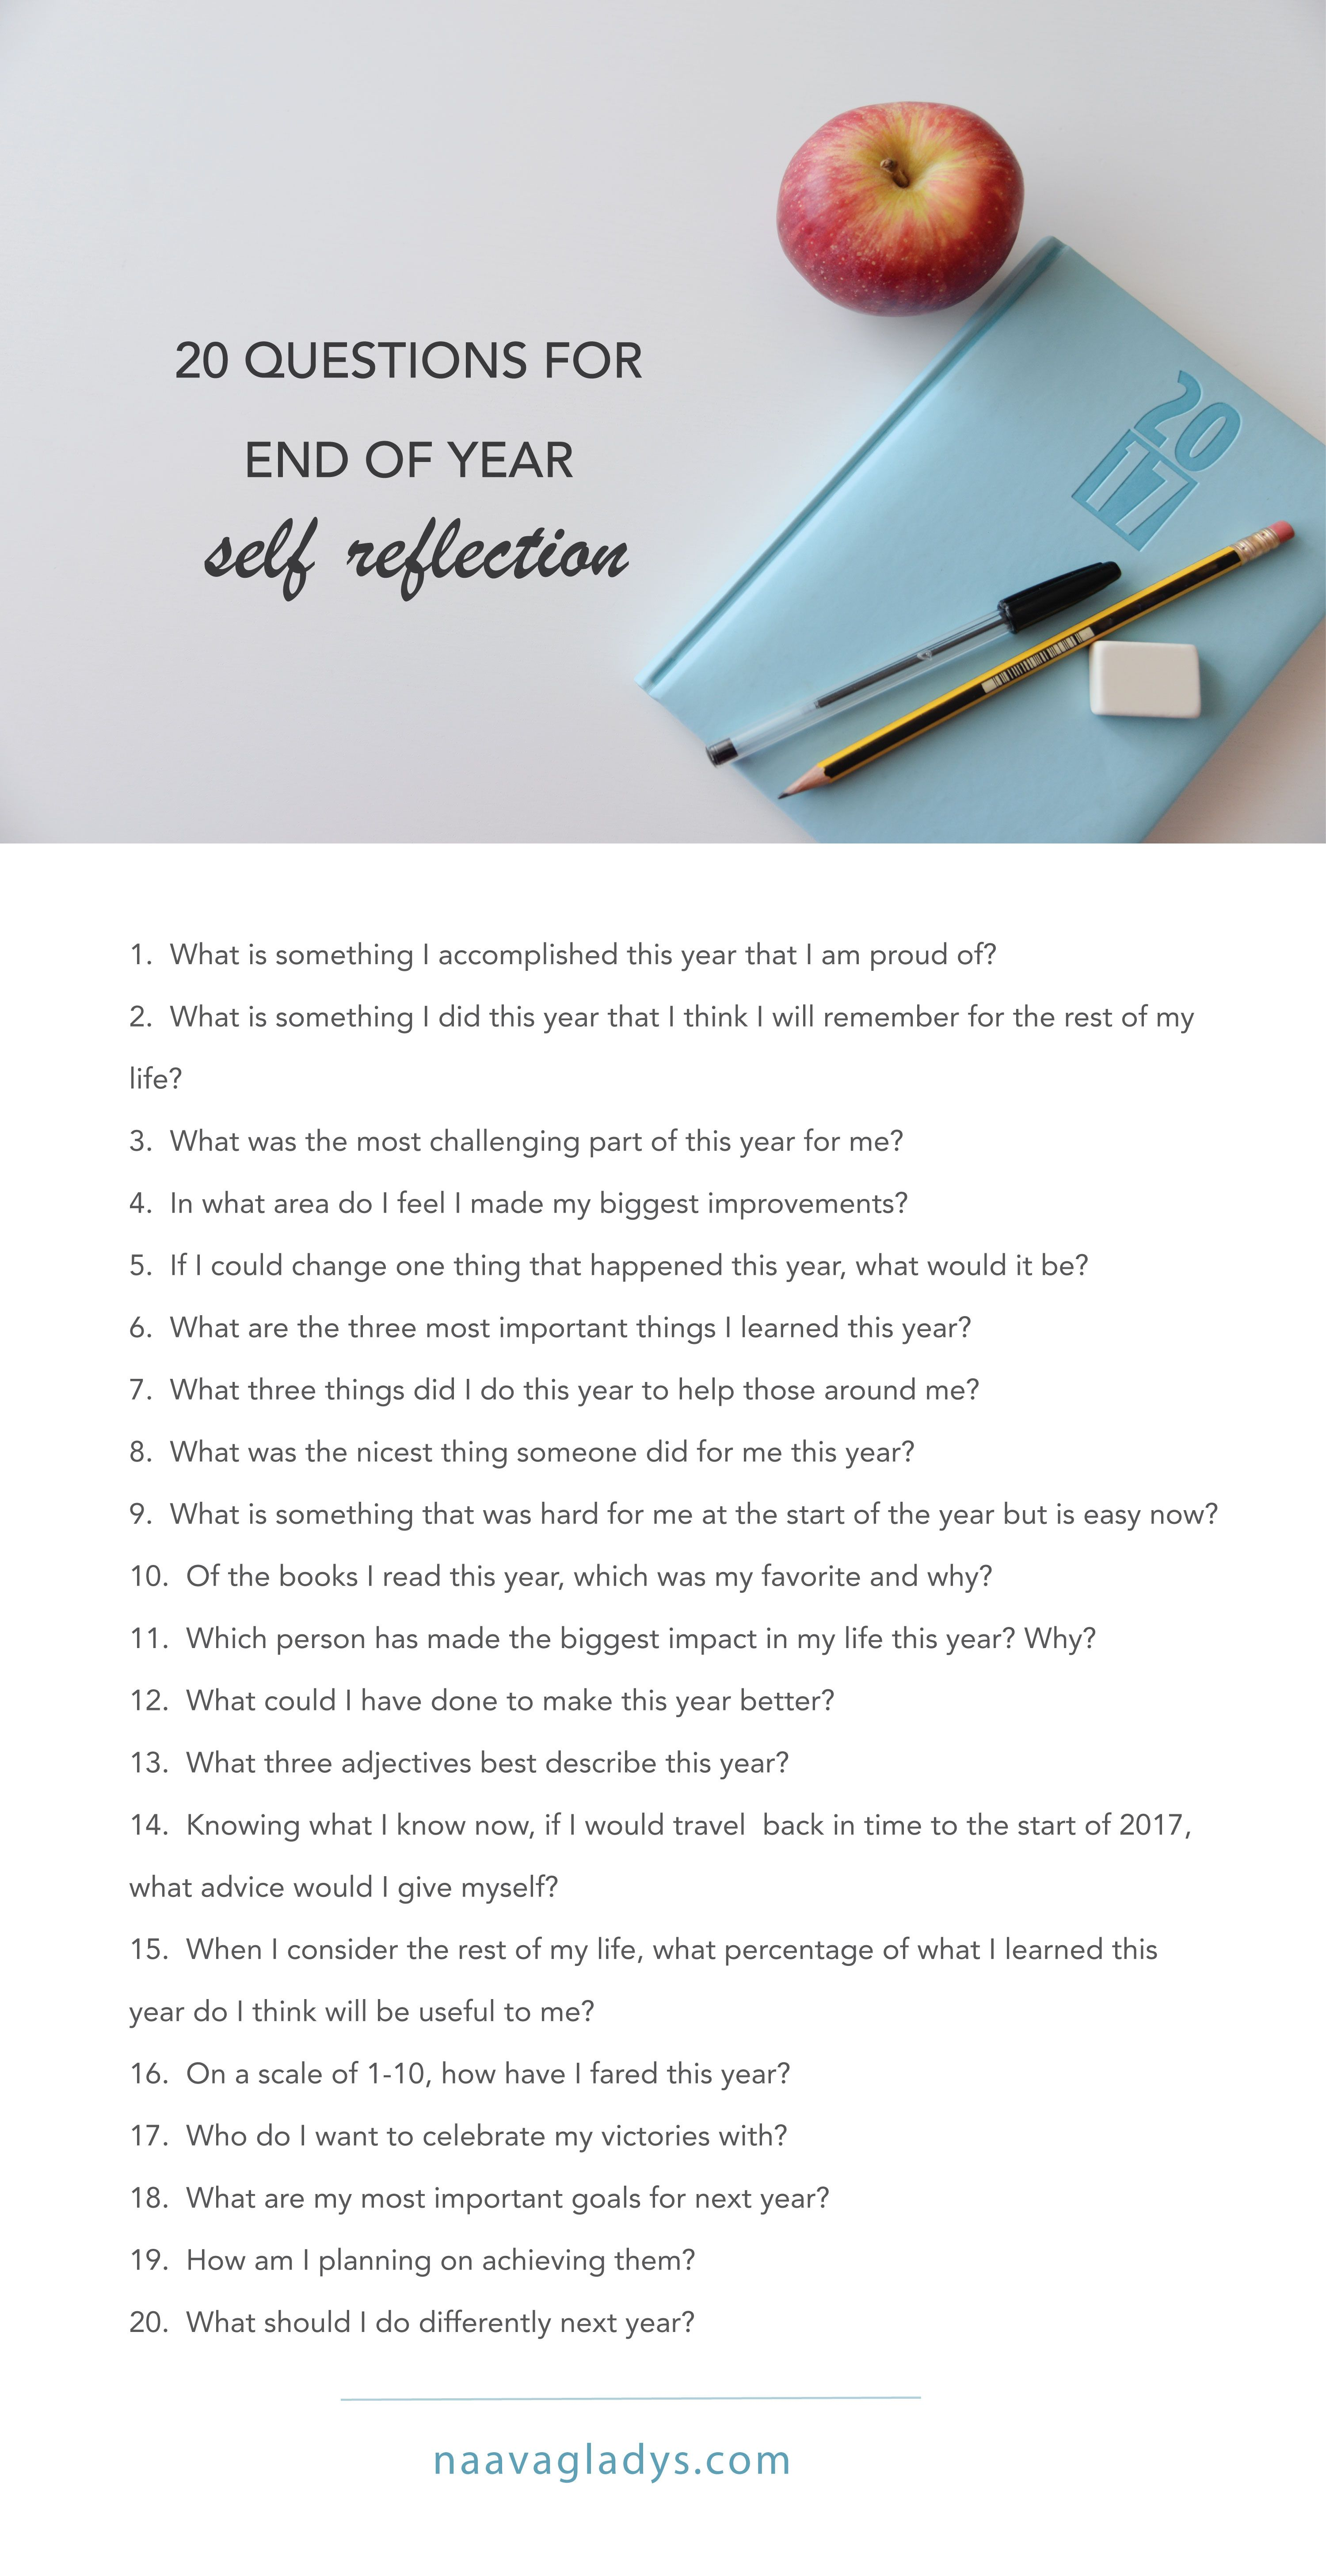 20 Questions For End Of Year Self Reflection. #journal #prompts # selfreflection #naavagladys #journalprompts #inspiration